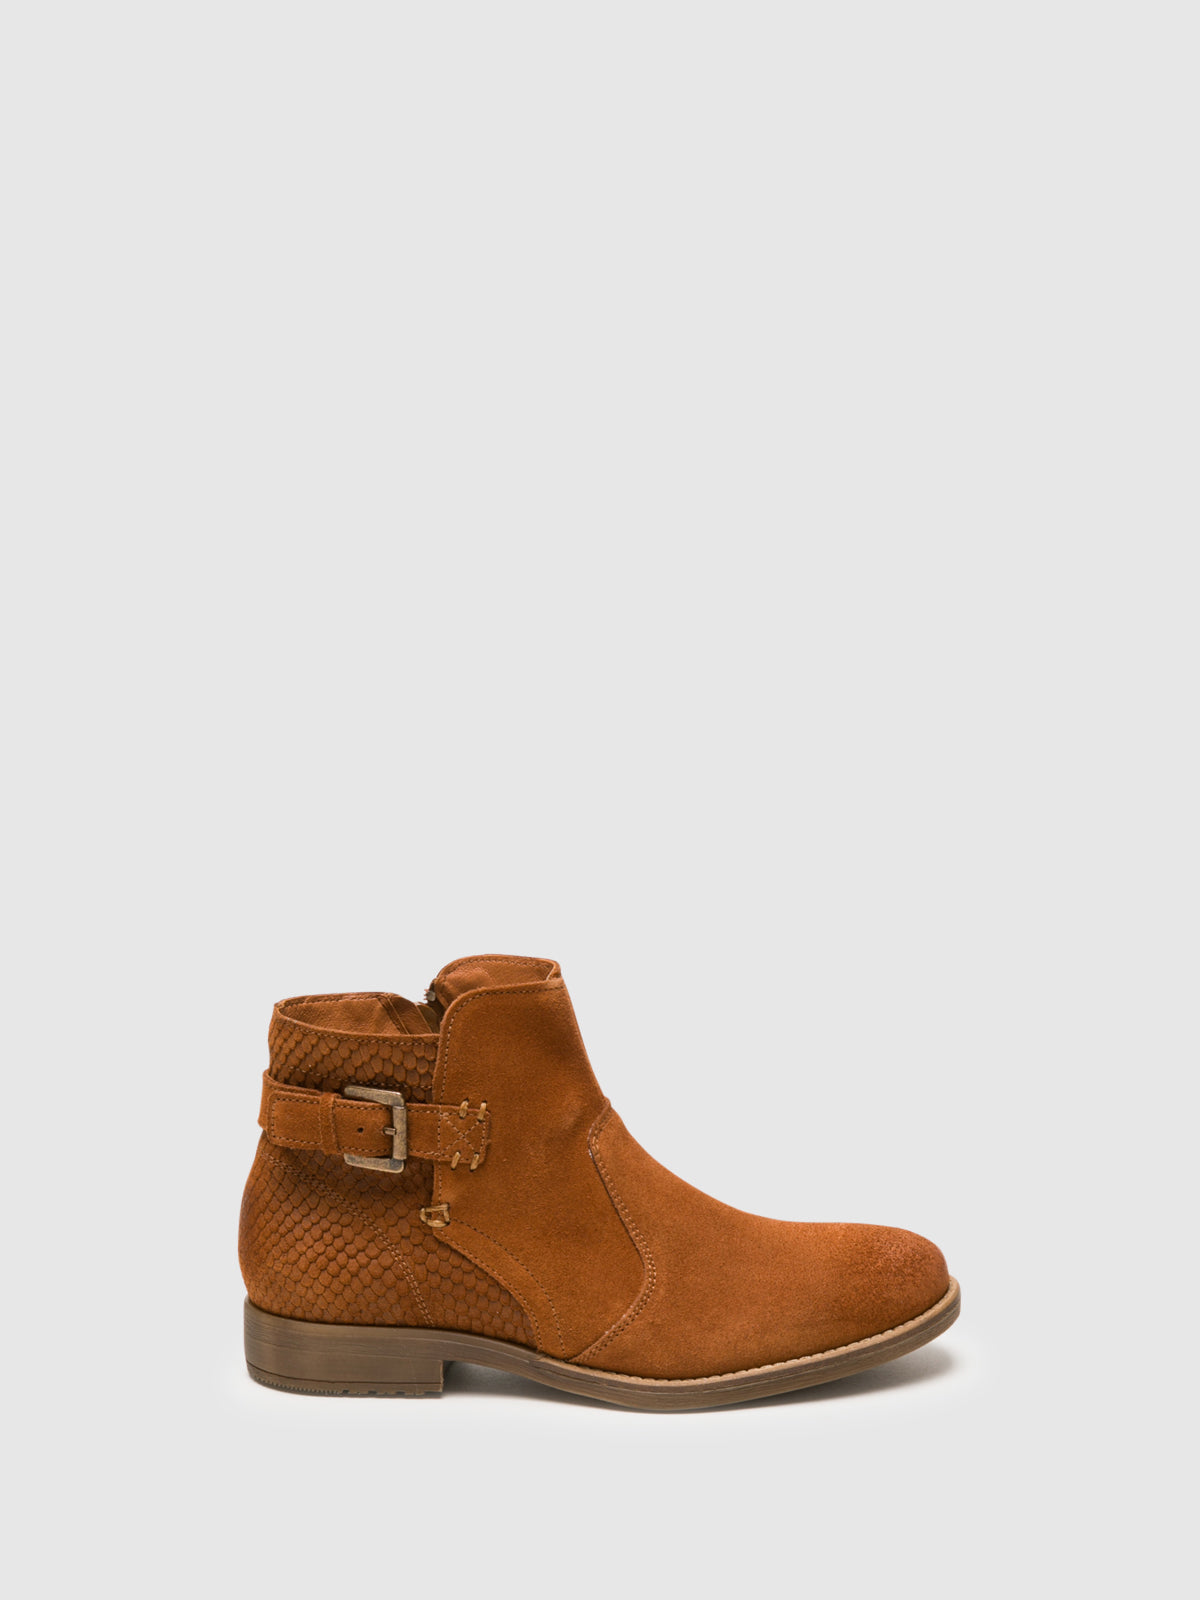 Bos&Co Peru Zip Up Ankle Boots